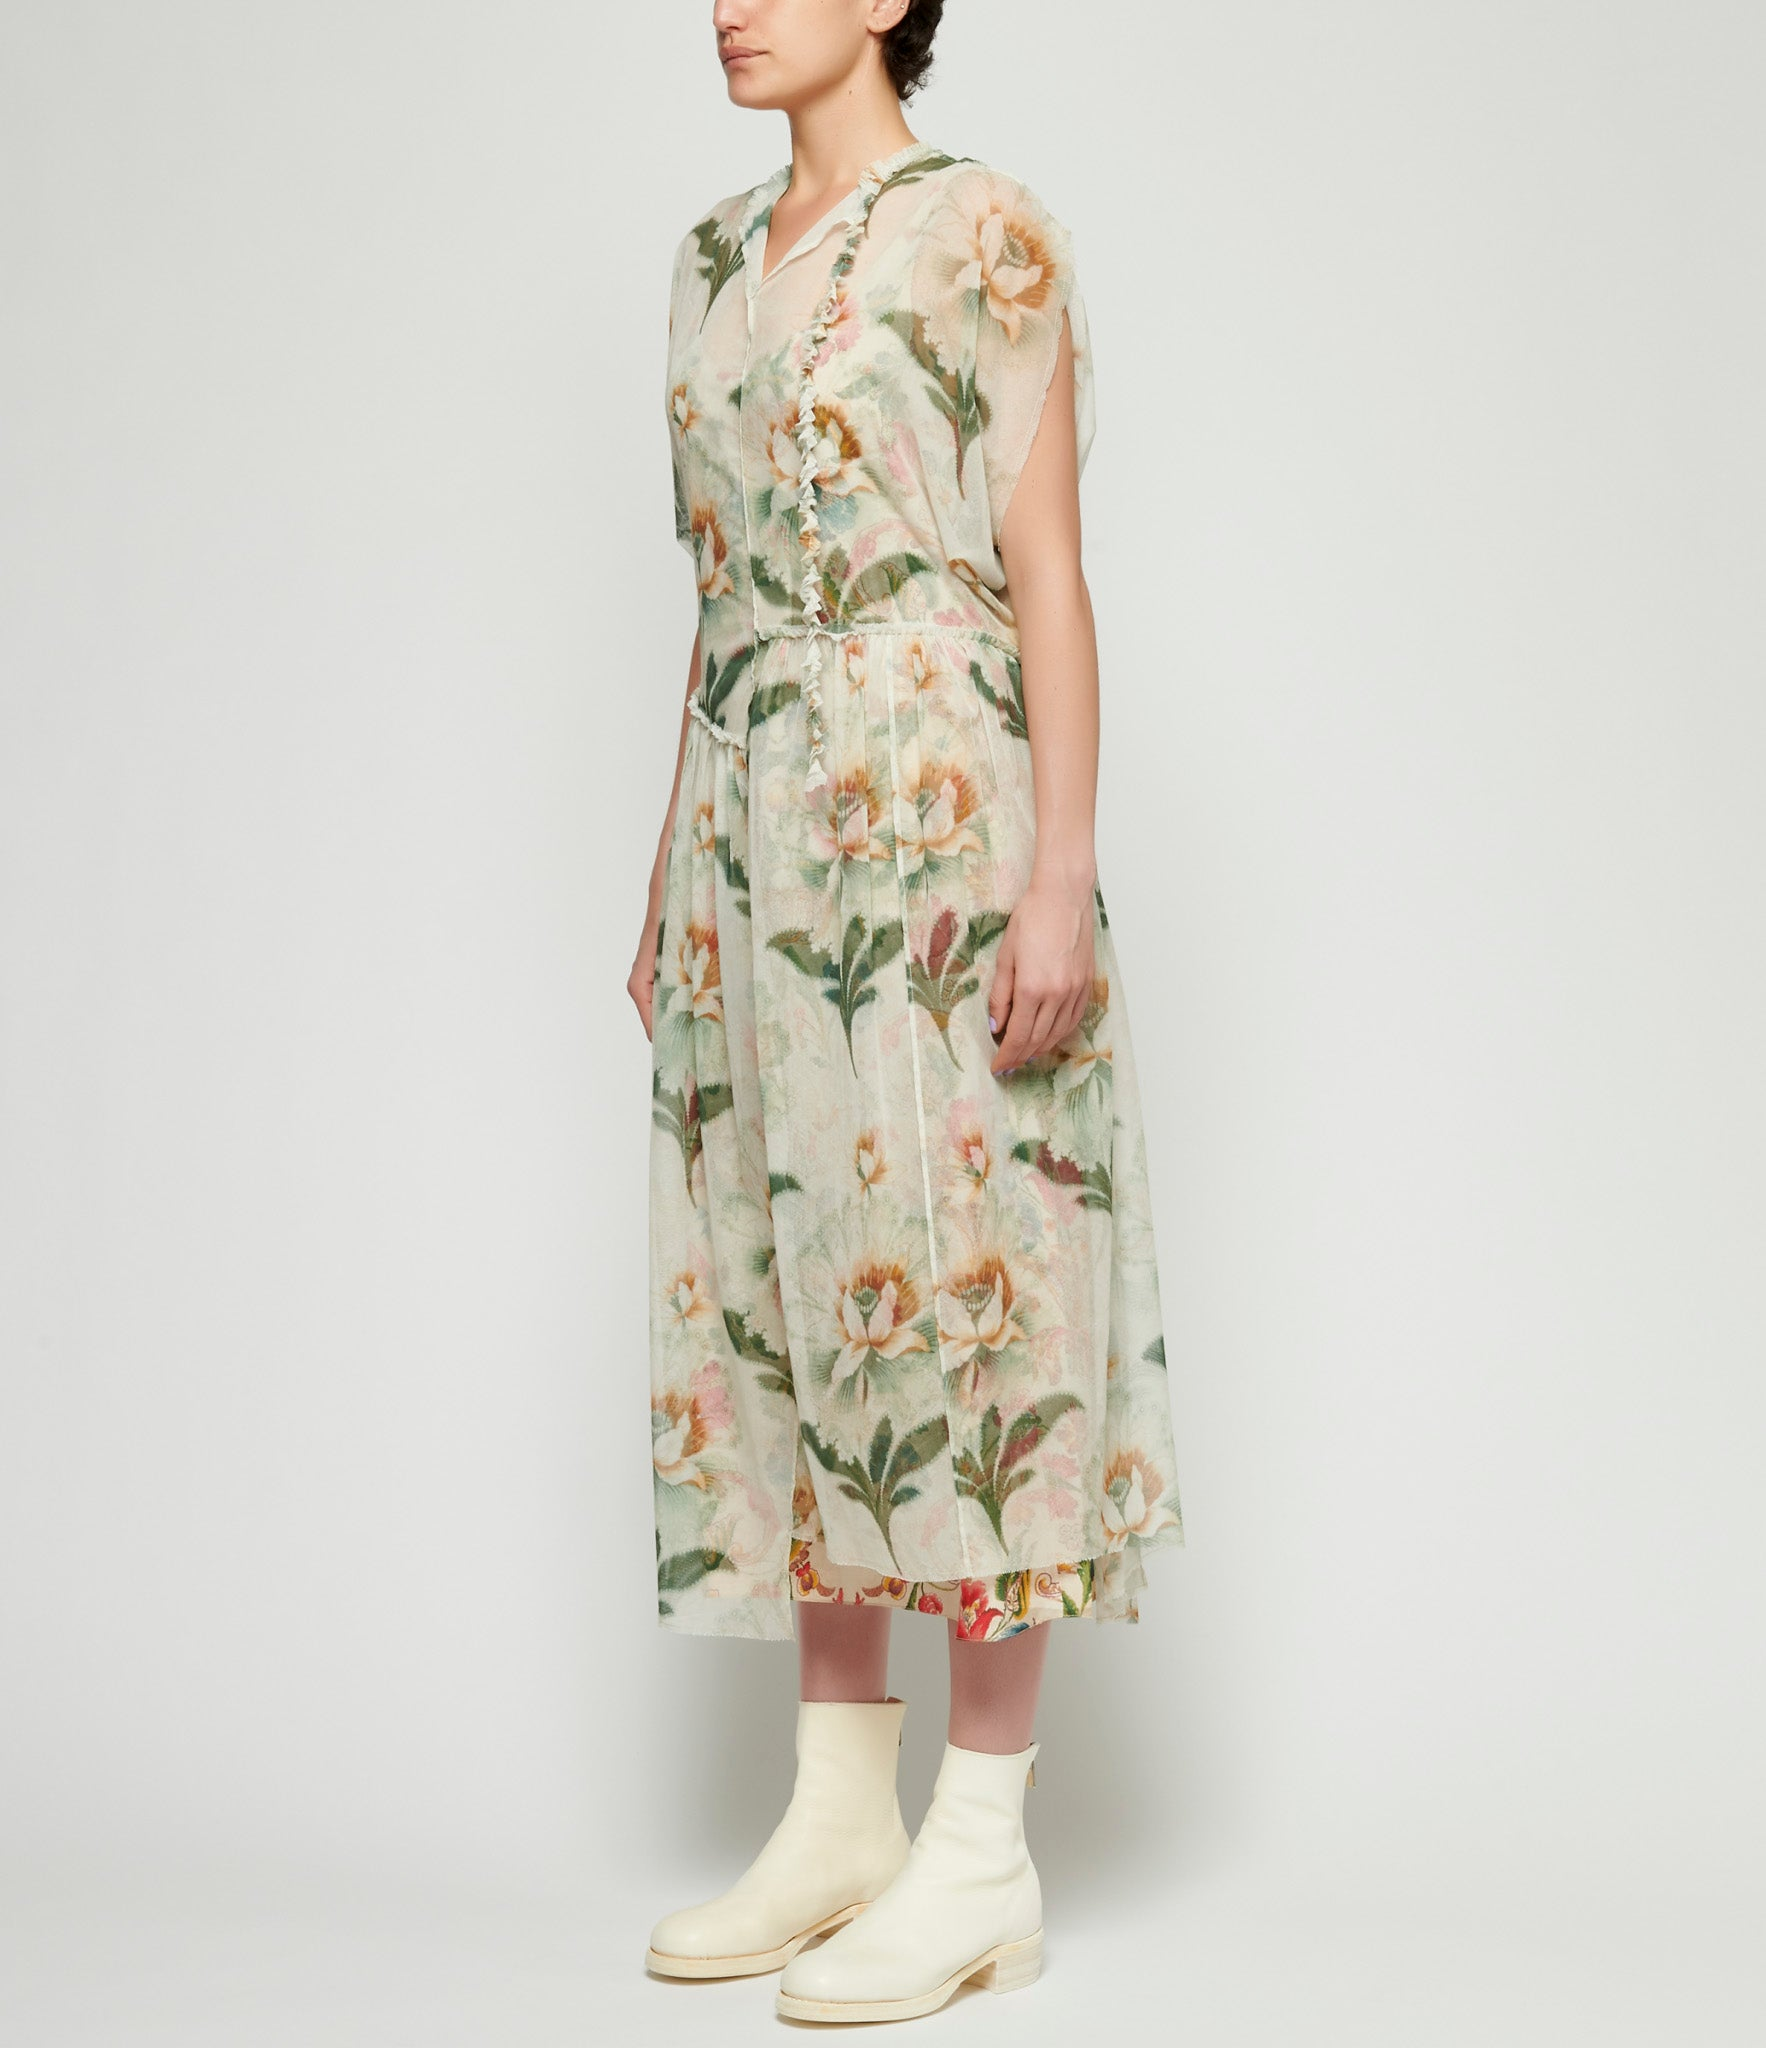 By Walid Beige Lotus Flower Print Aida Dress